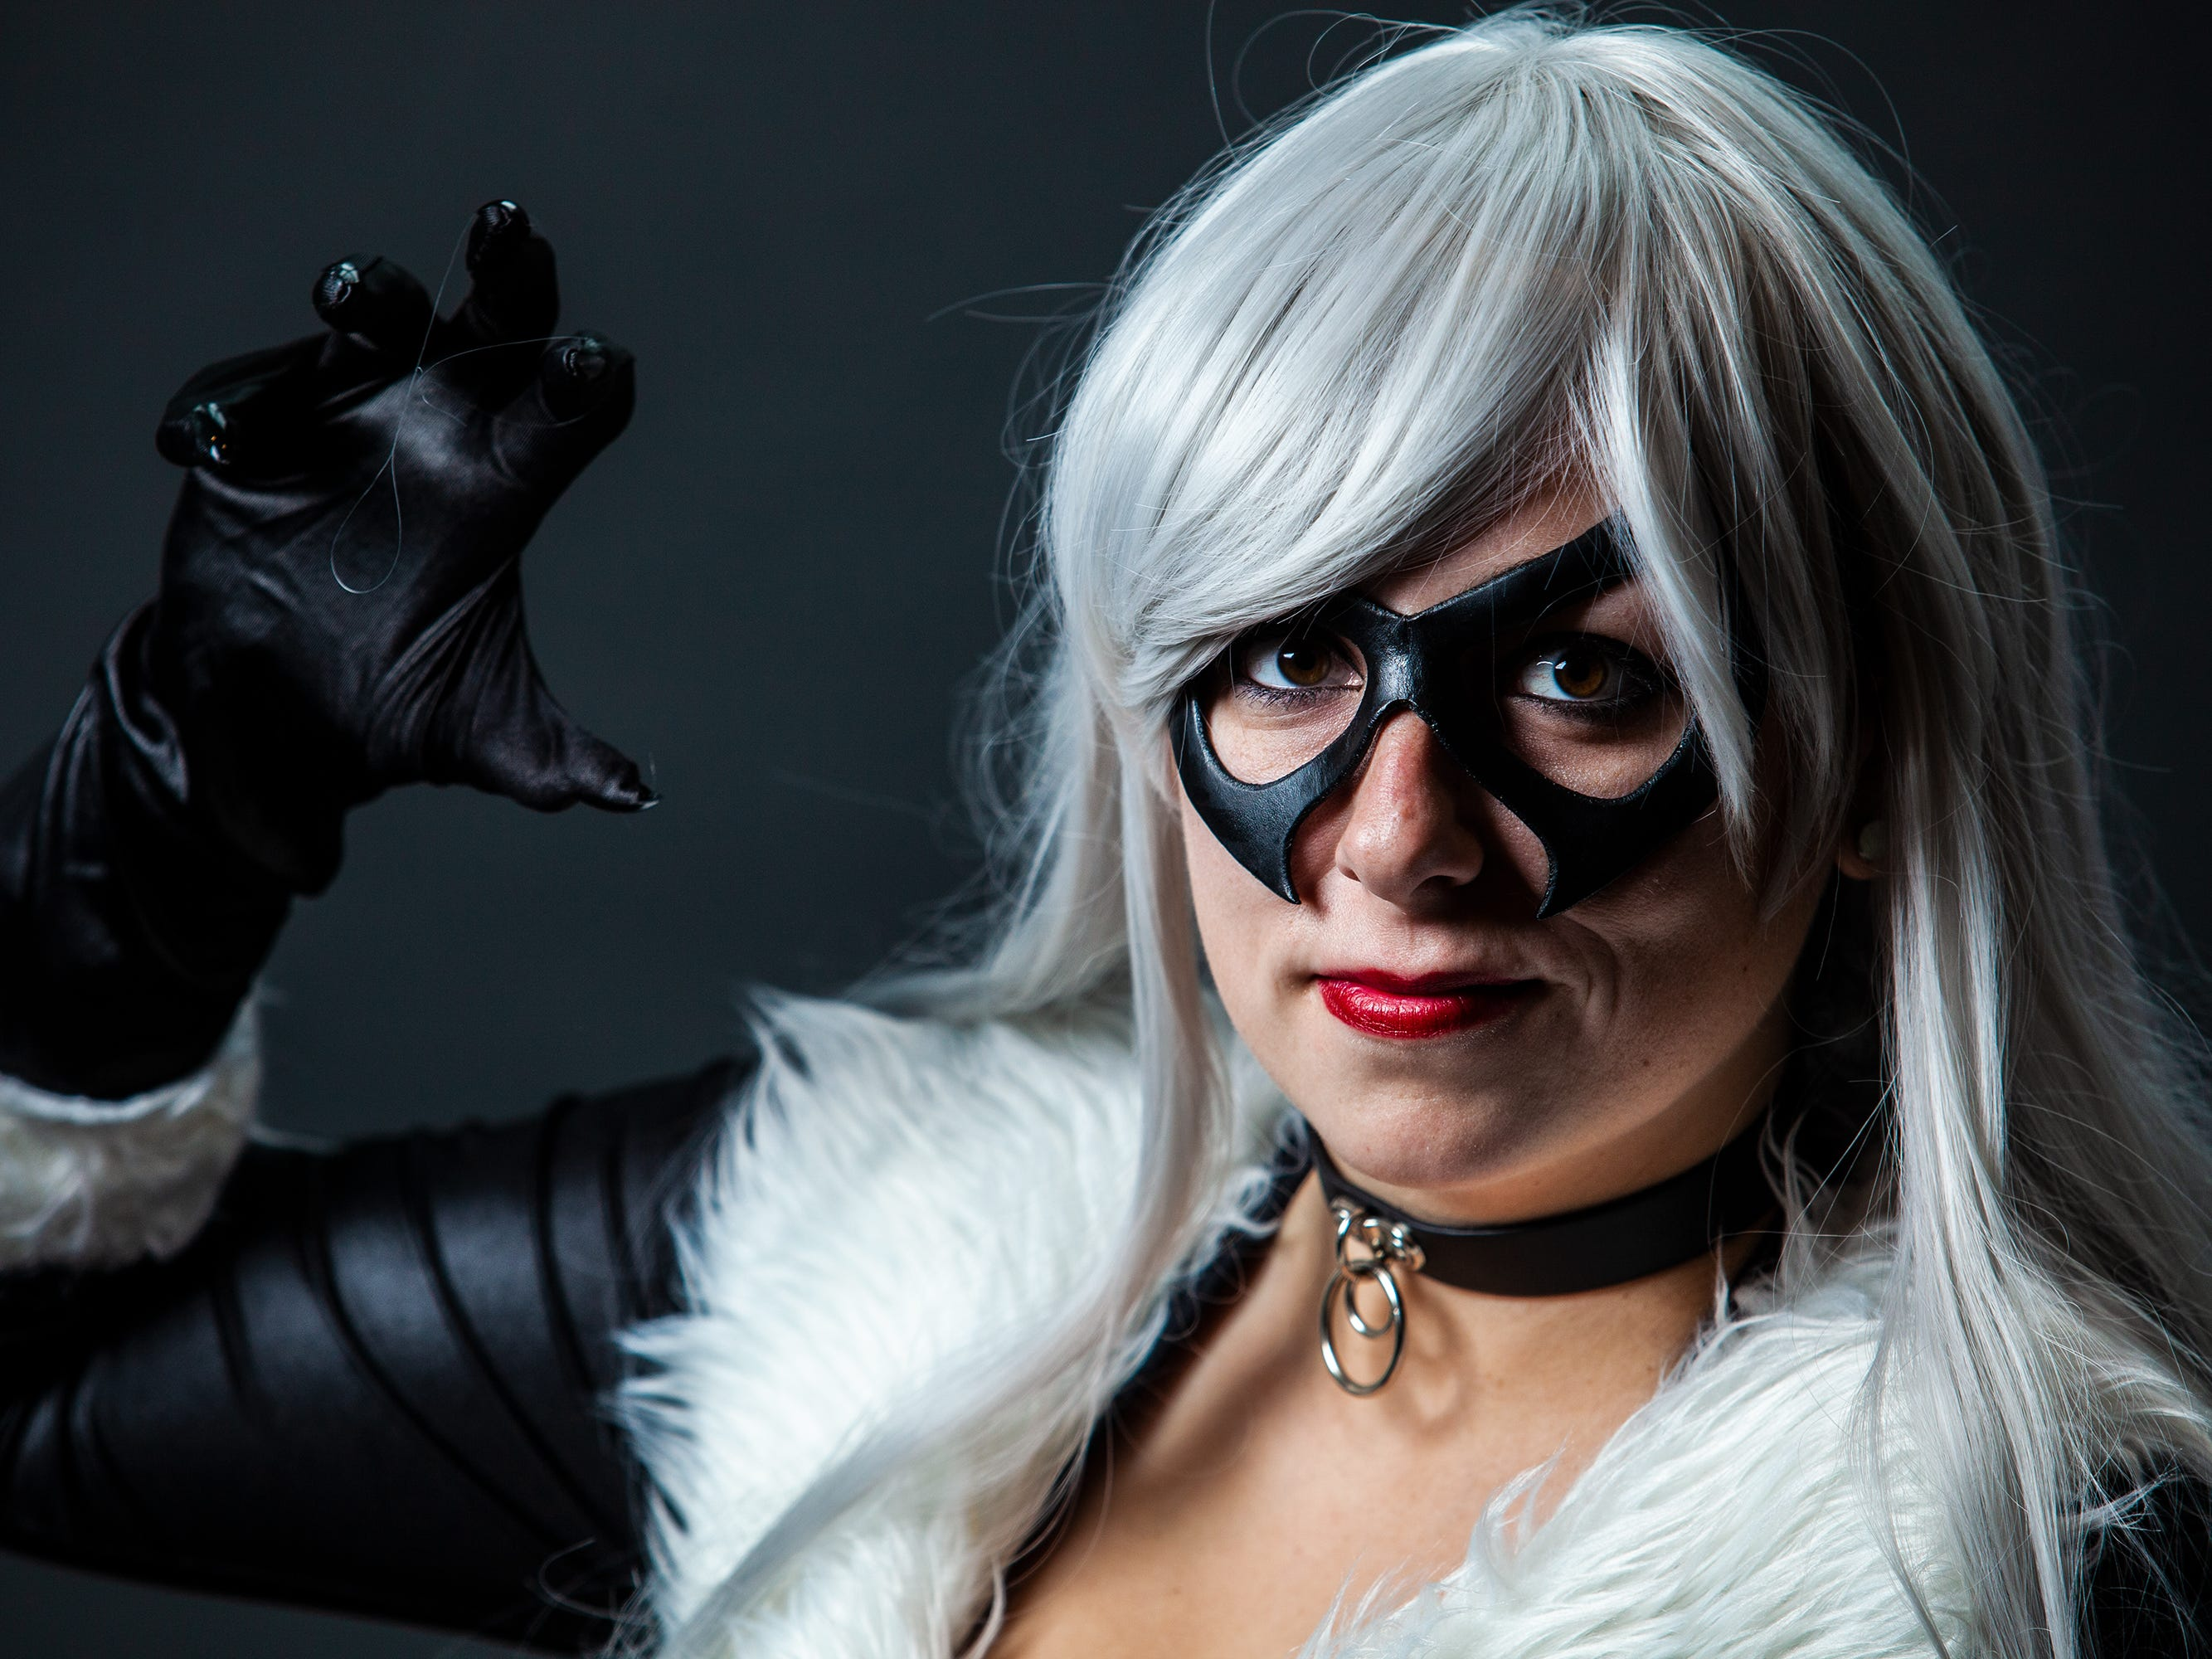 Hannah Bunnell poses as Hannah Blackcat for the Louisville Supercon at the Kentucky International Convention Center on Saturday, Dec. 1, 2018.